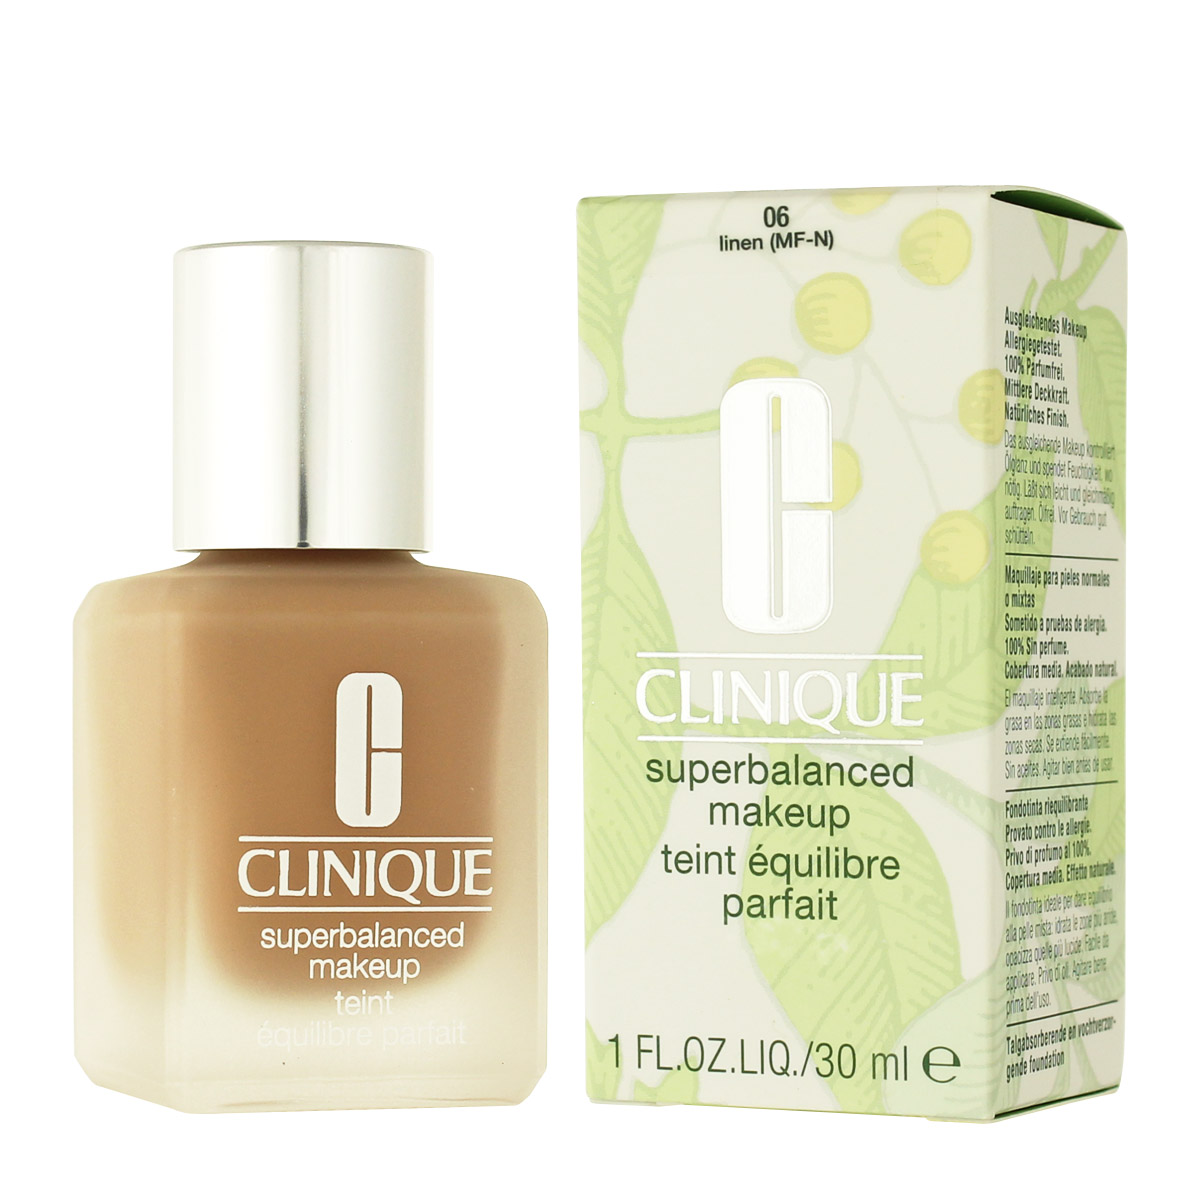 Clinique Superbalanced Makeup (06 Linen MF-N) 30 ml